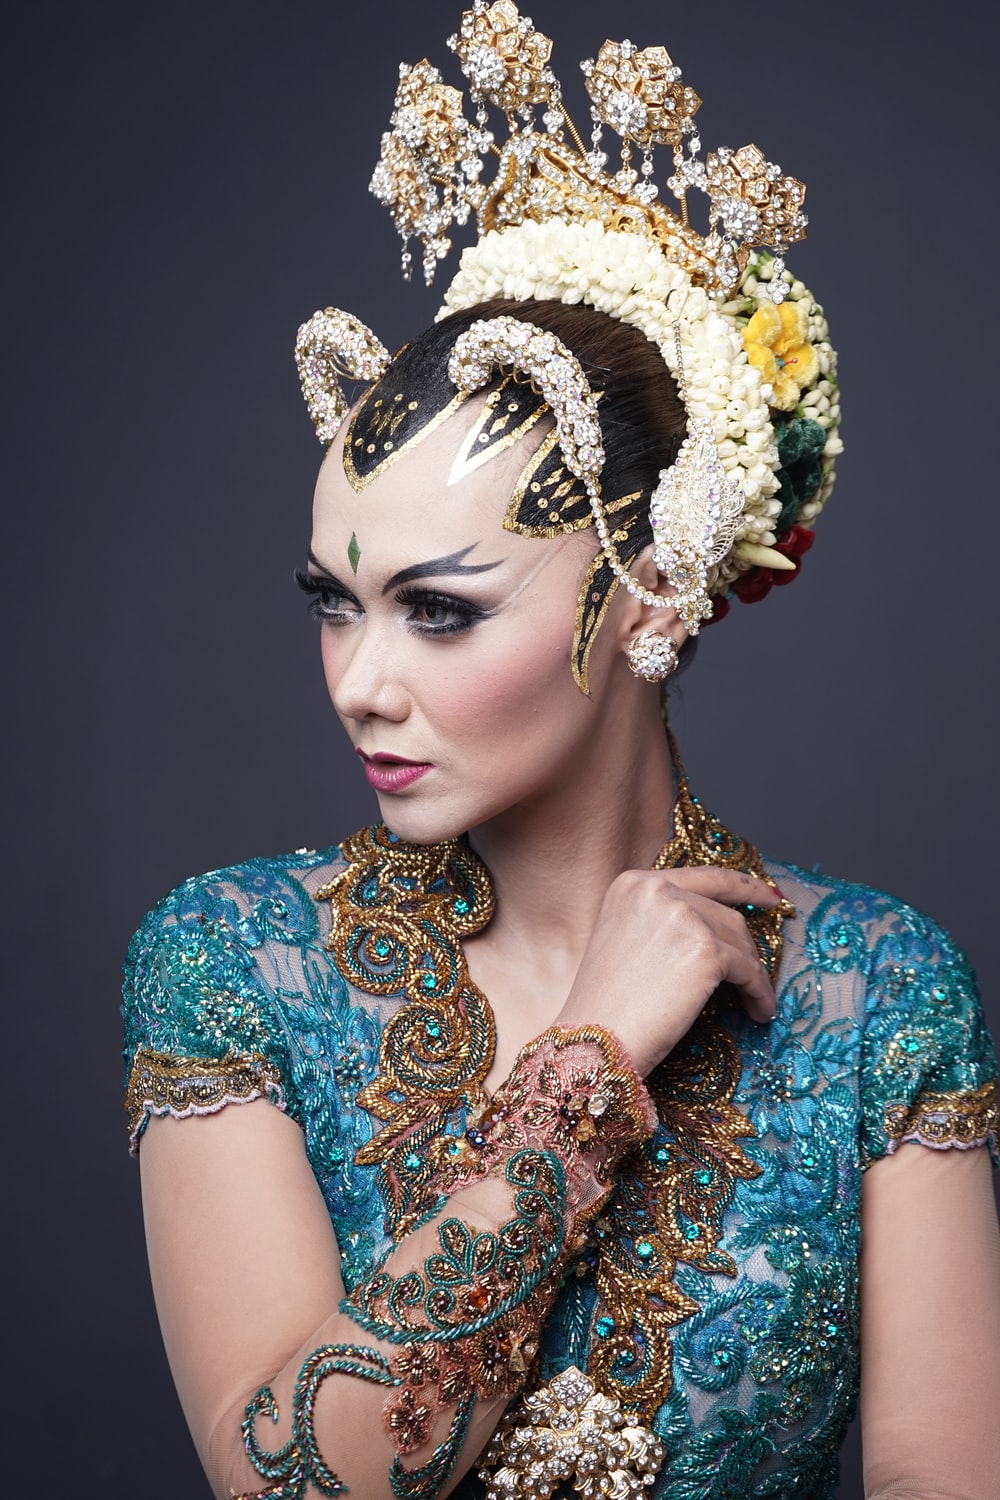 woman in blue and brown floral dress wearing gold crown